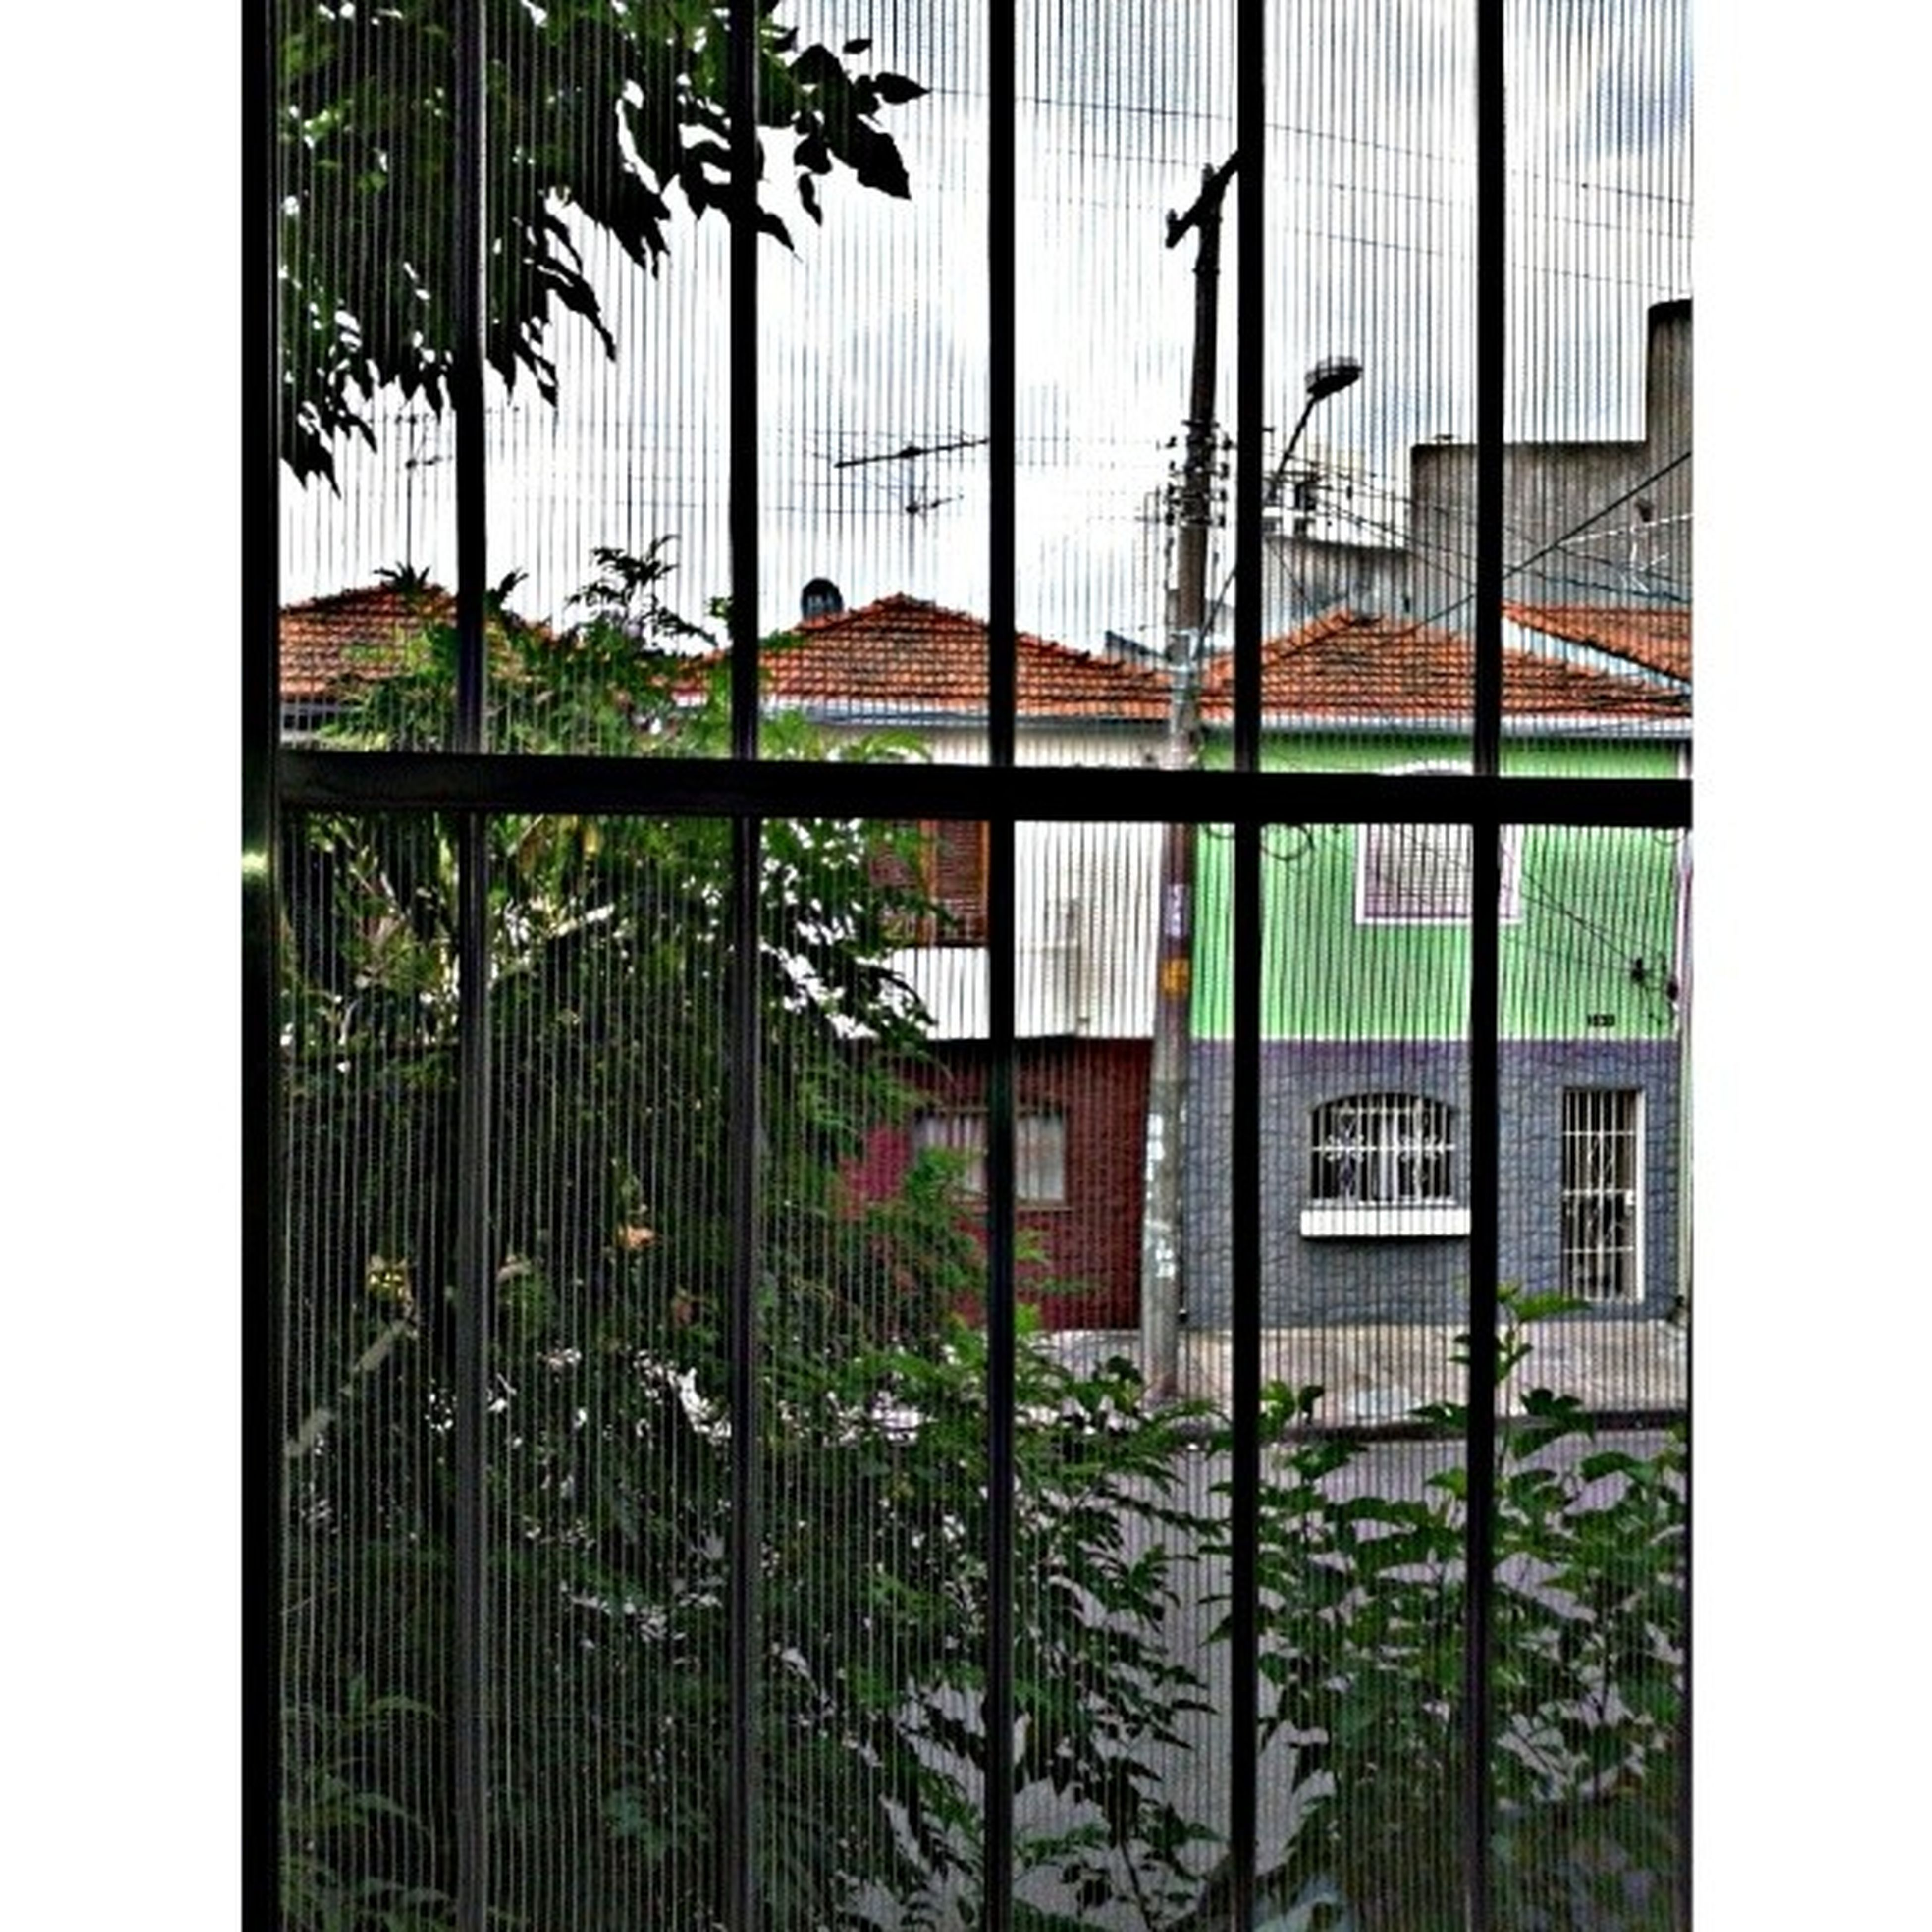 building exterior, architecture, built structure, transfer print, window, auto post production filter, house, residential structure, city, glass - material, building, residential building, fence, day, no people, plant, chainlink fence, outdoors, growth, tree